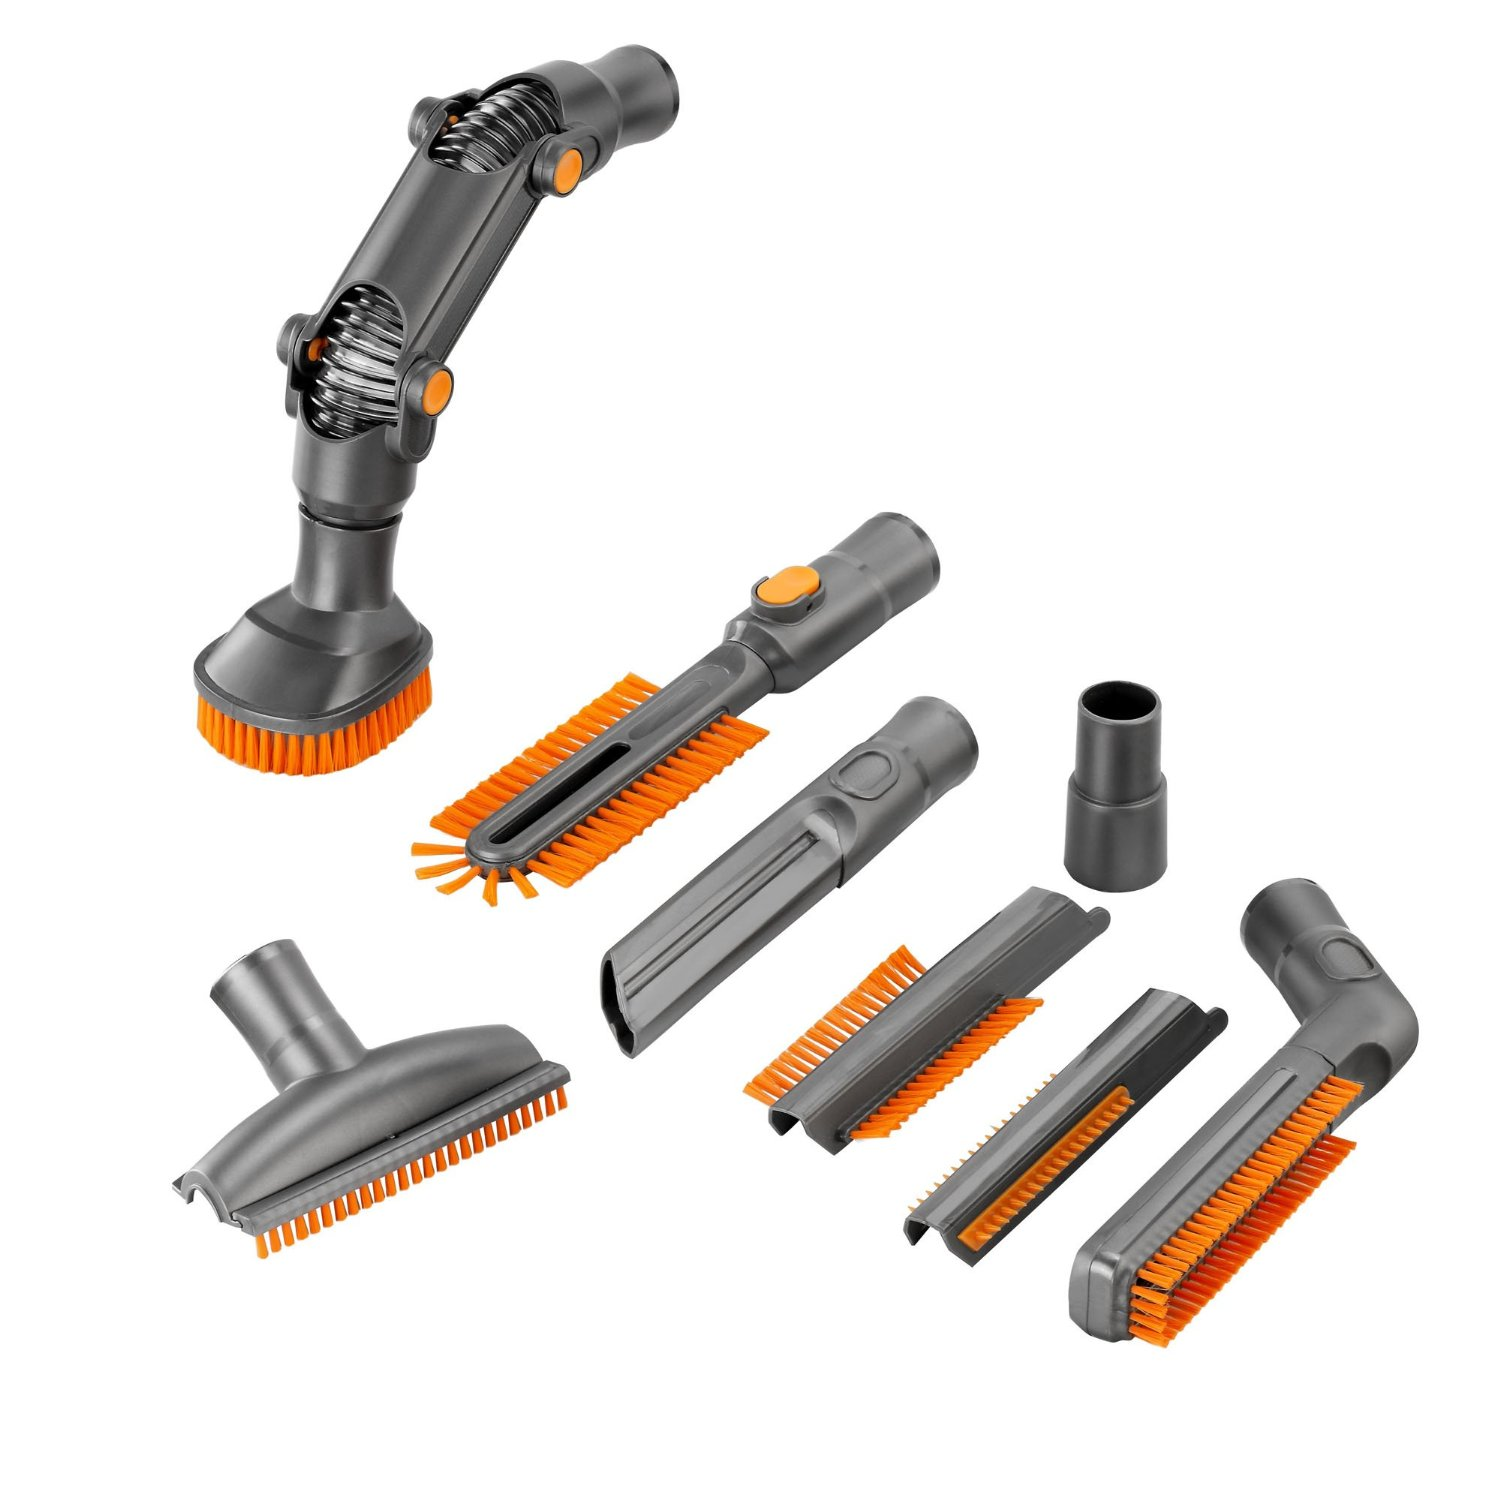 vacuum-cleaner-accessories-cleaning-tools